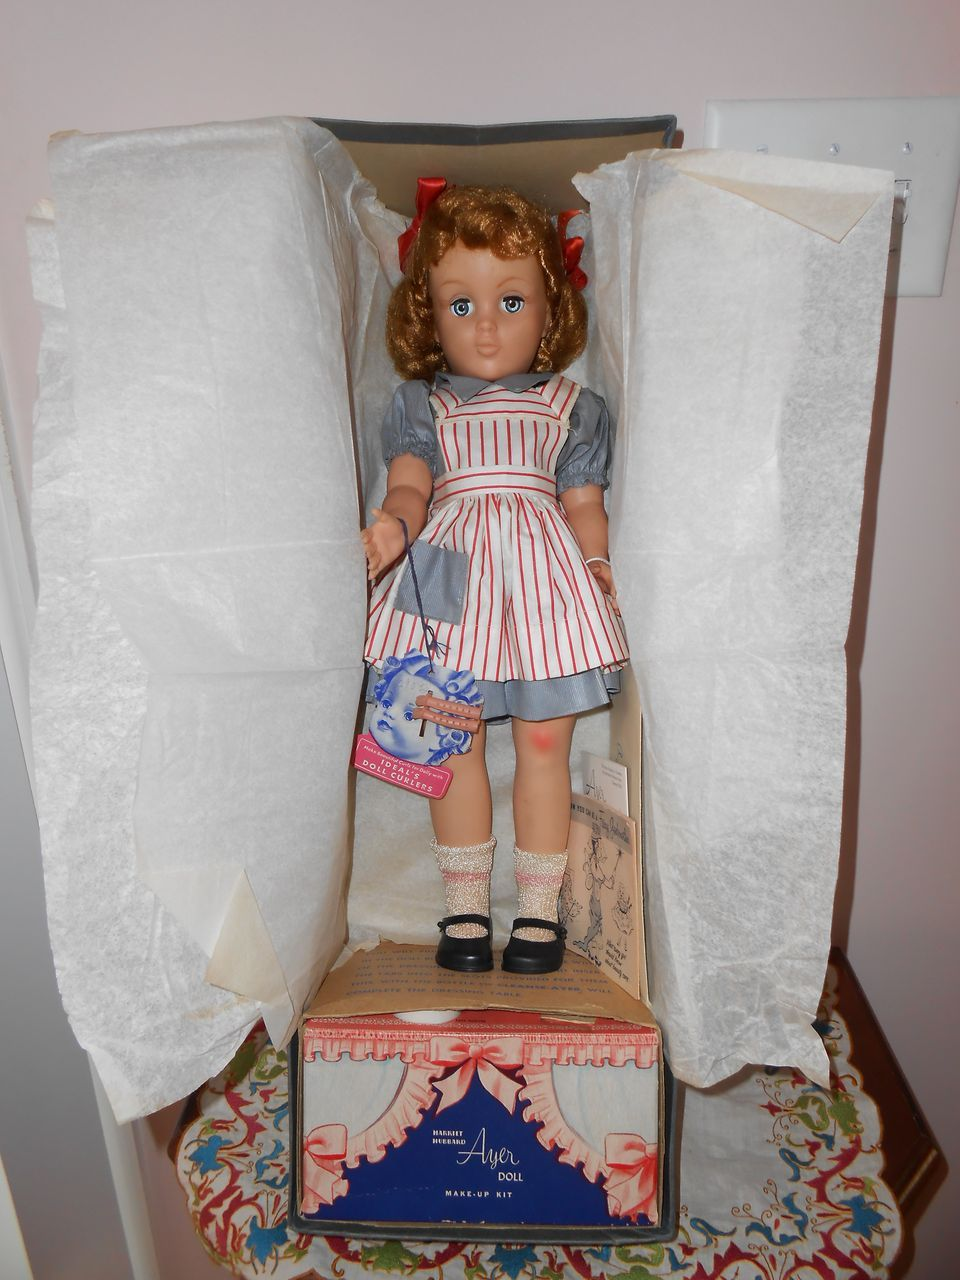 MIB Harriet Hubbard Ayers 19in Beauty Doll Ideal Toy Co.  Fabulous